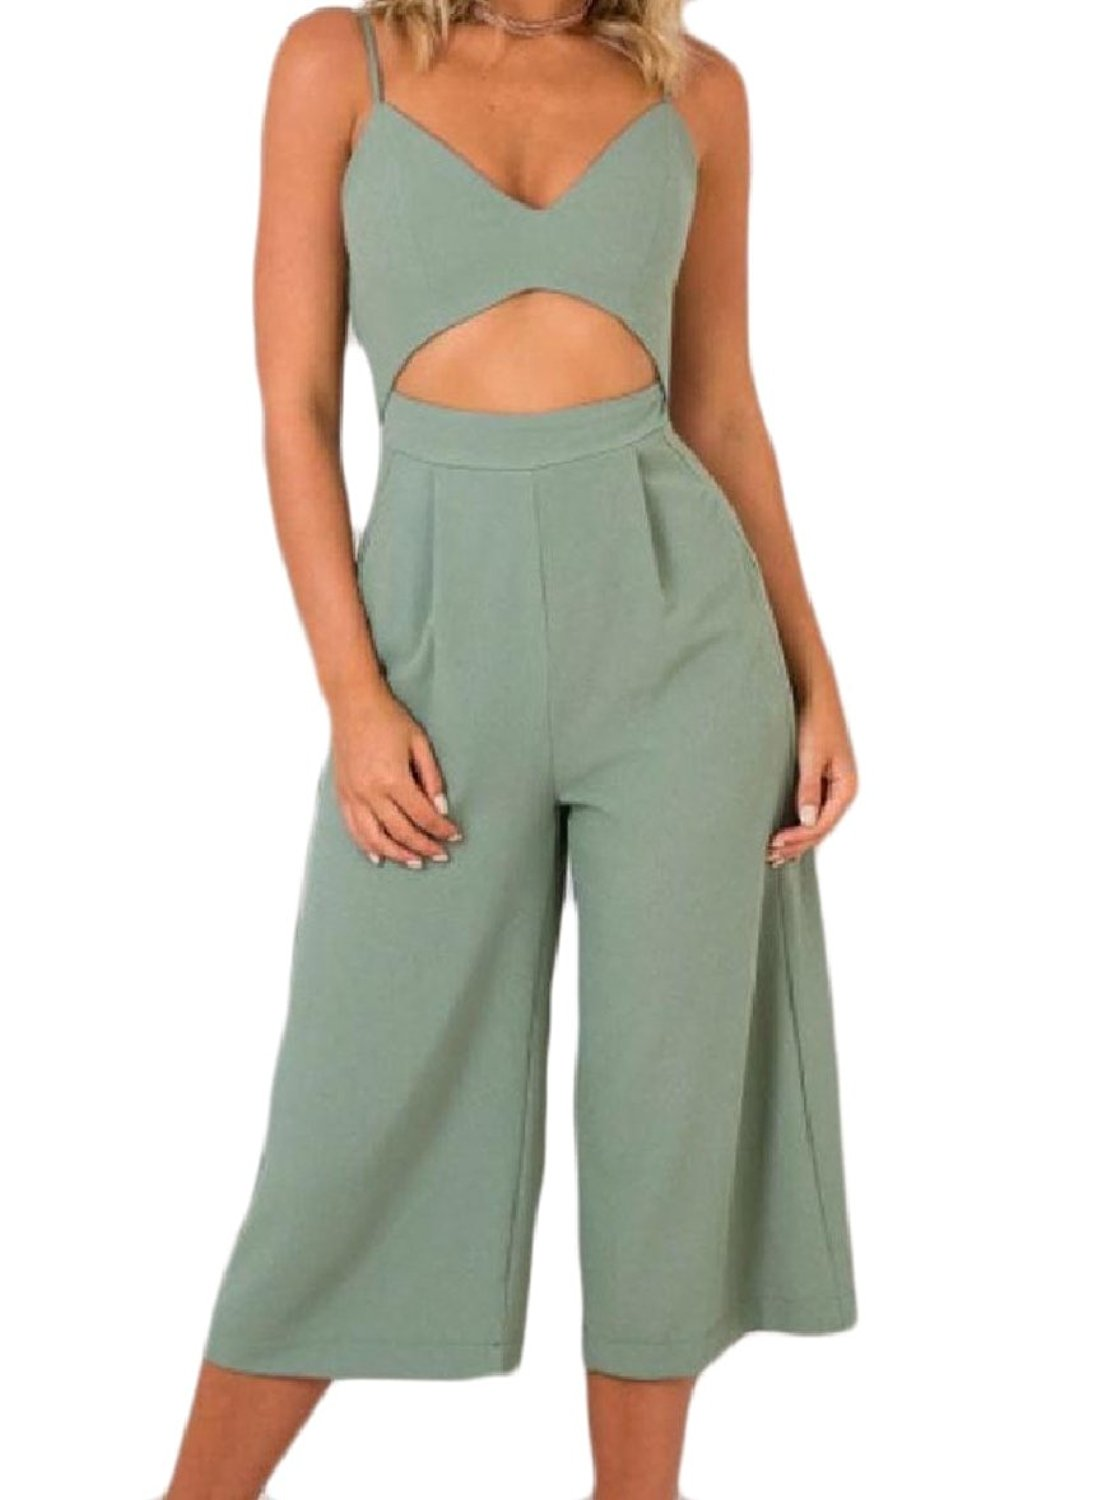 Zimaes-Women Hollow Out Sling Backless Zip-up Pocket Siamese Pants